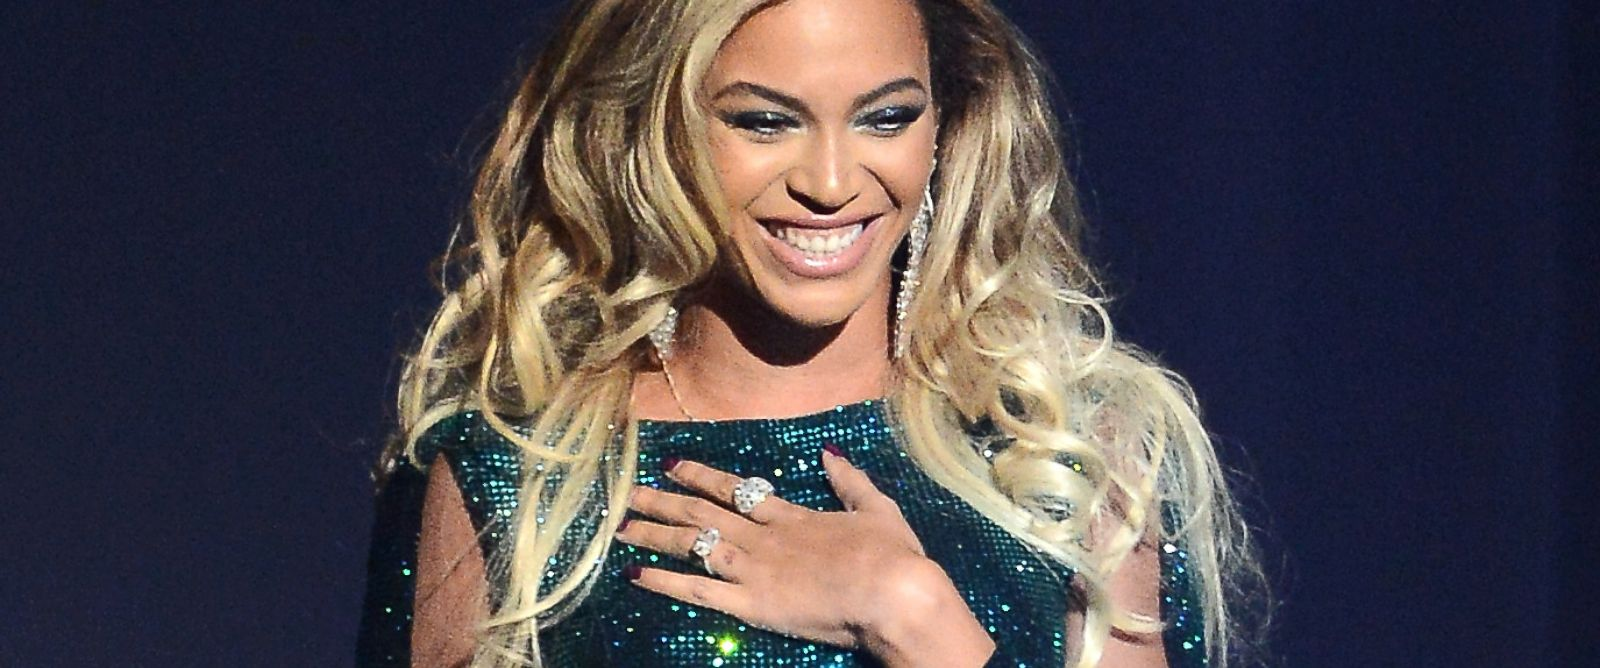 PHOTO: Beyonce performs at The BRIT Awards 2014 at 02 Arena on Feb. 19, 2014 in London.